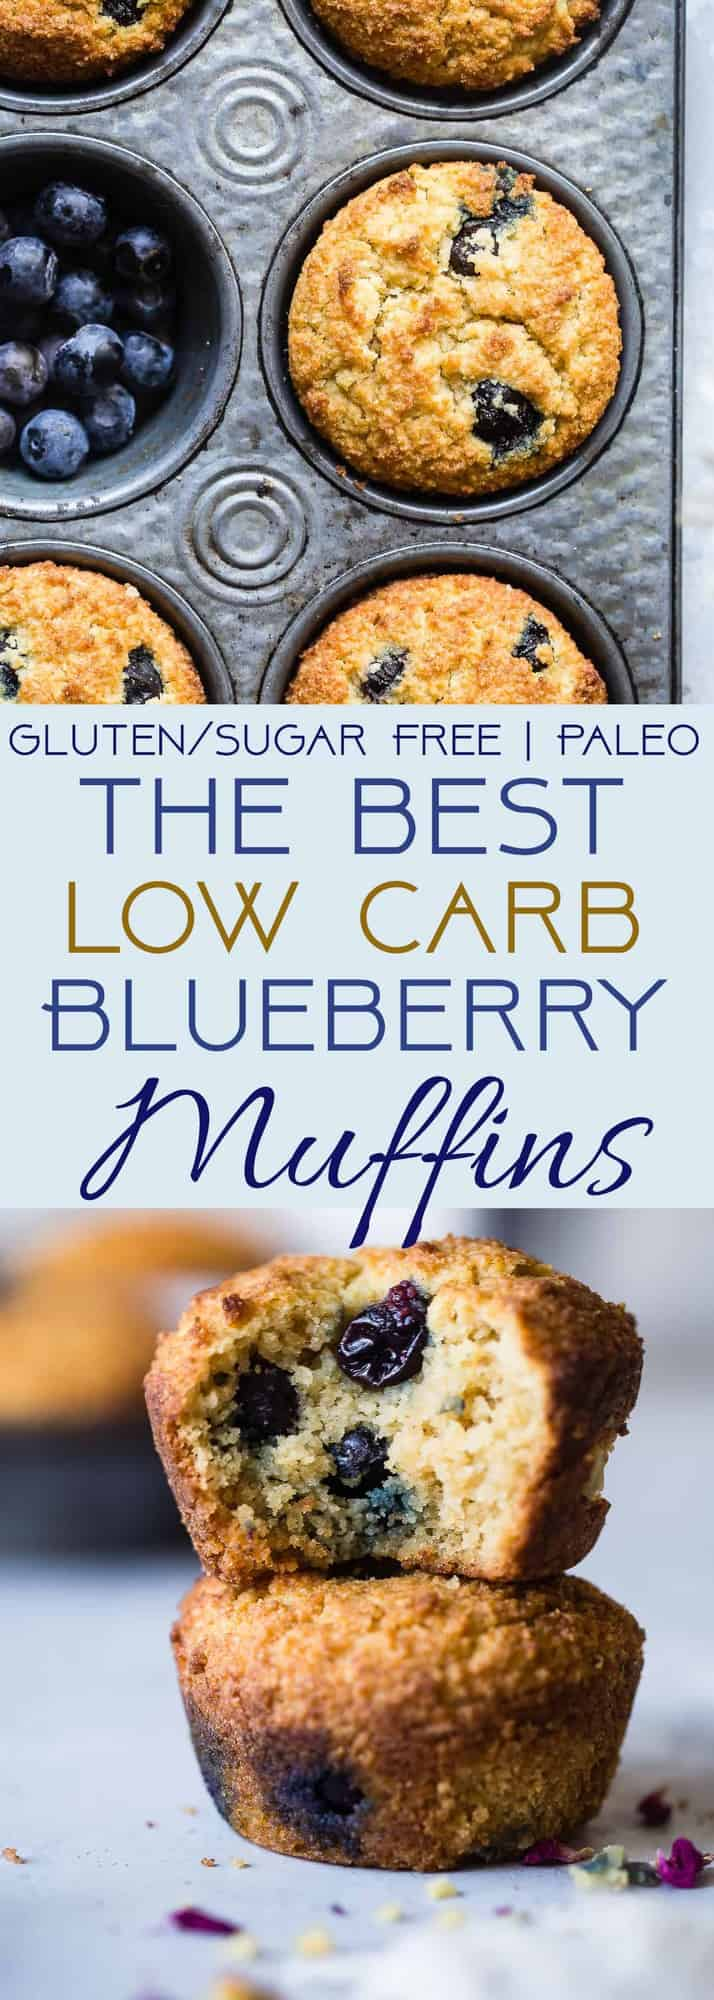 Sugar Free Dress: Low Carb Sugar Free Keto Blueberry Muffins With Almond Flour